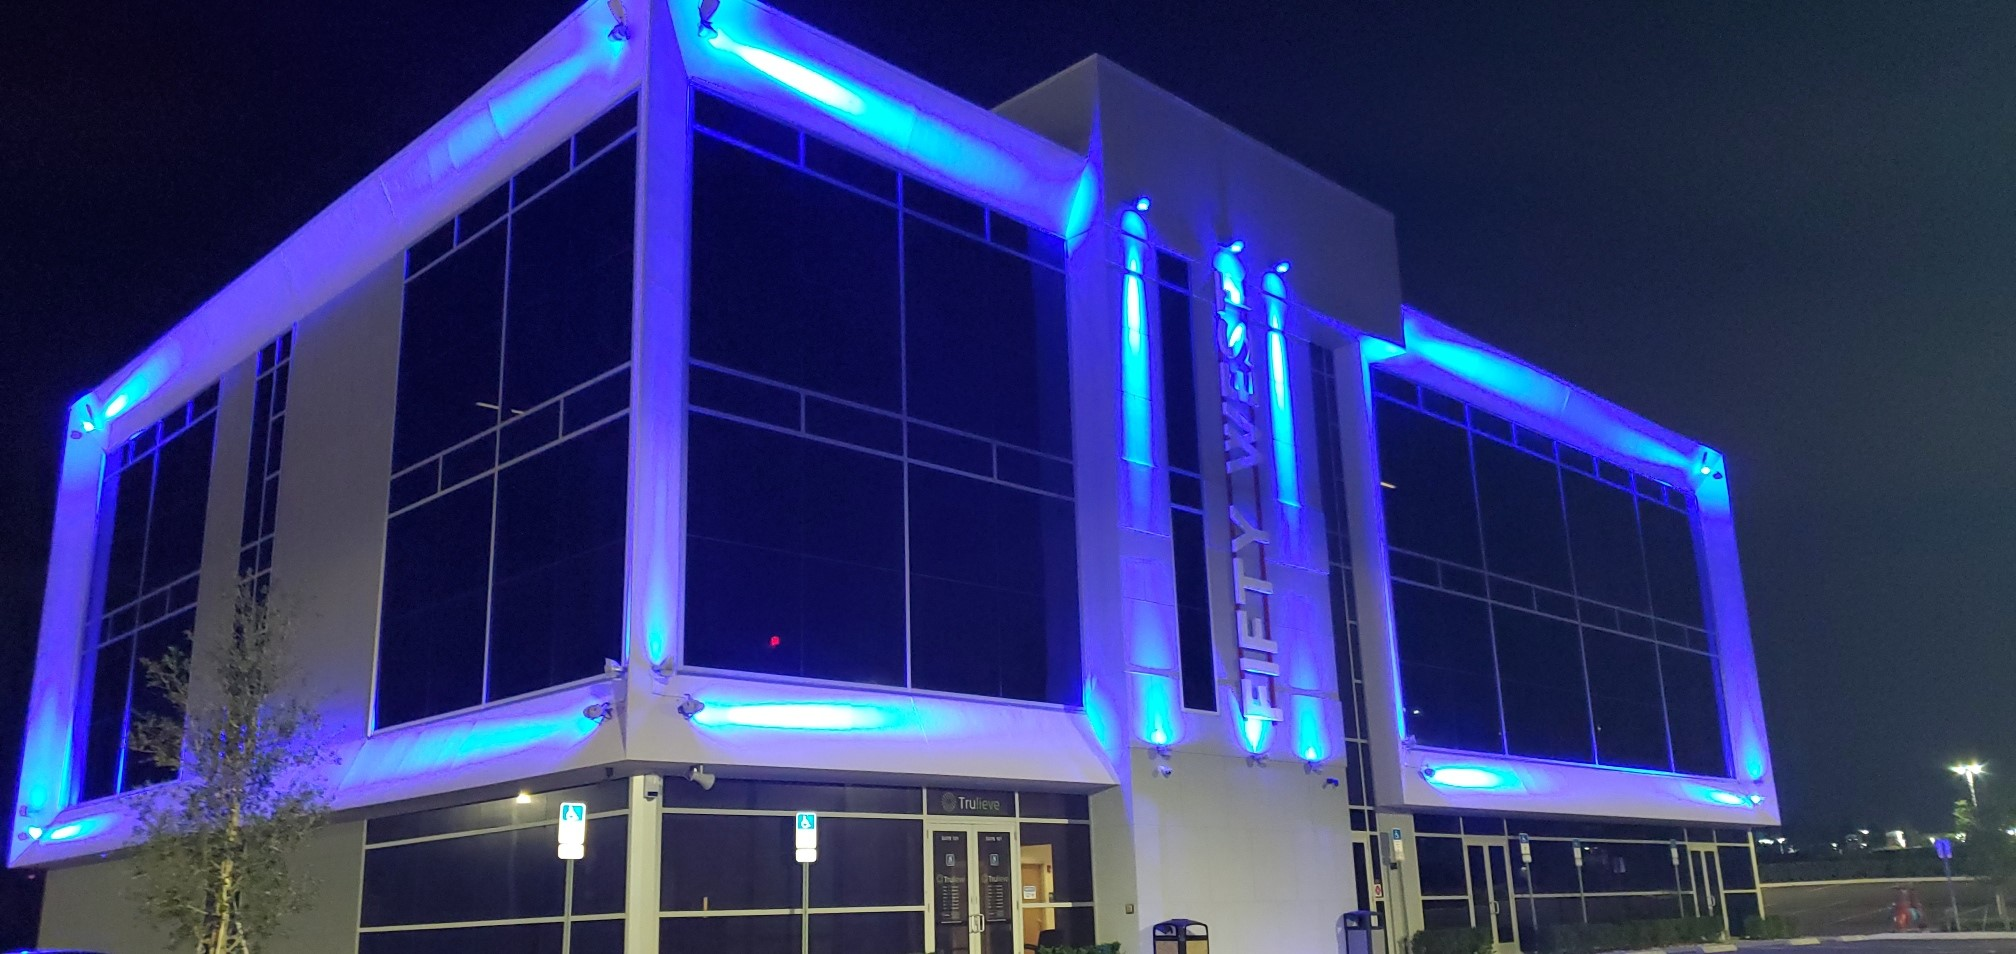 Fifty-West-Building-Orlando-Paint-The-Town-Blue-2021-FBITCAAA